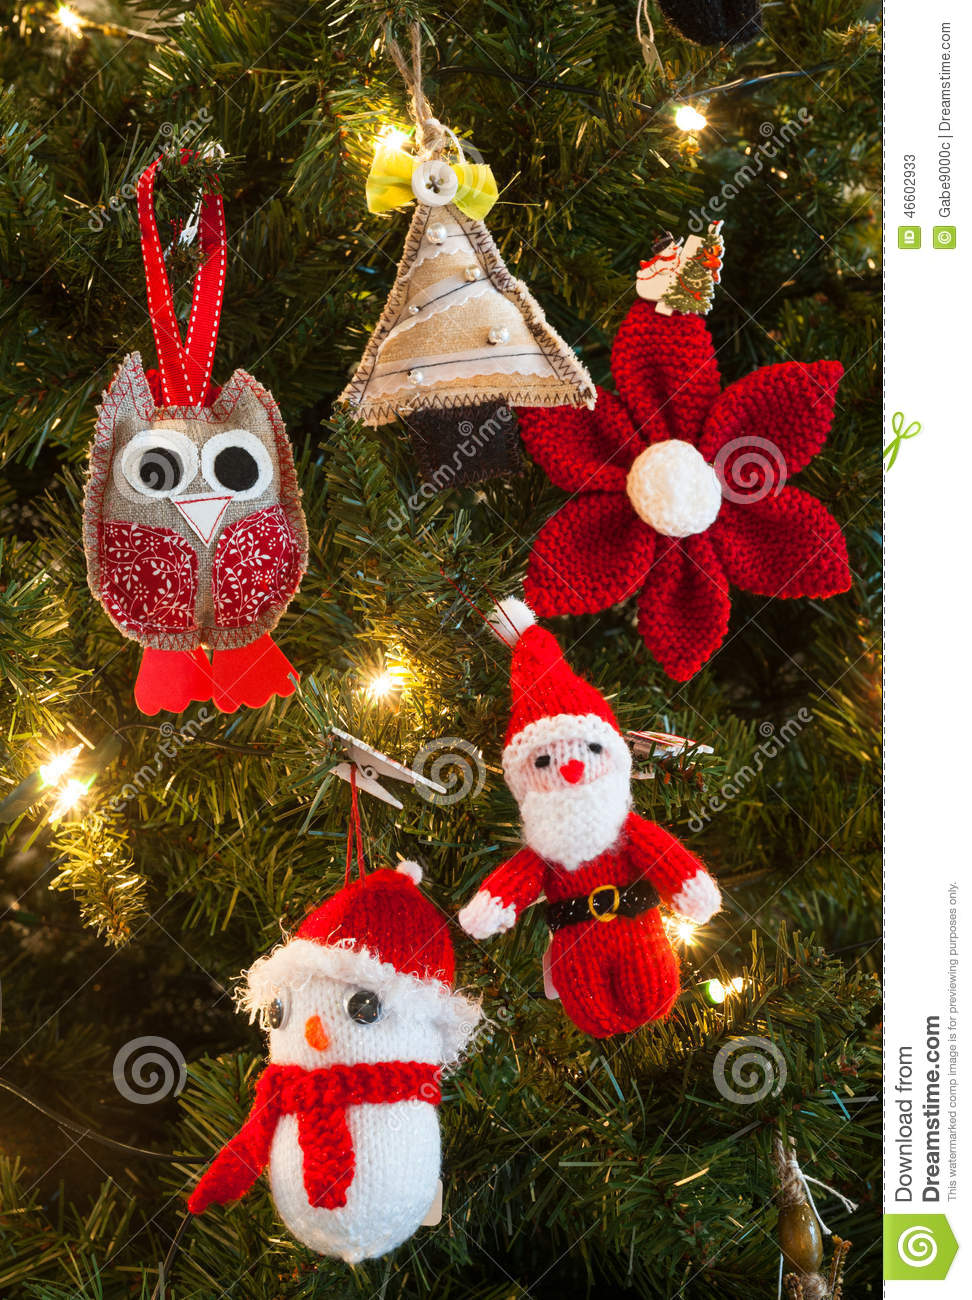 Knitted Christmas Tree Decorations Stock Image - Image of texture ...